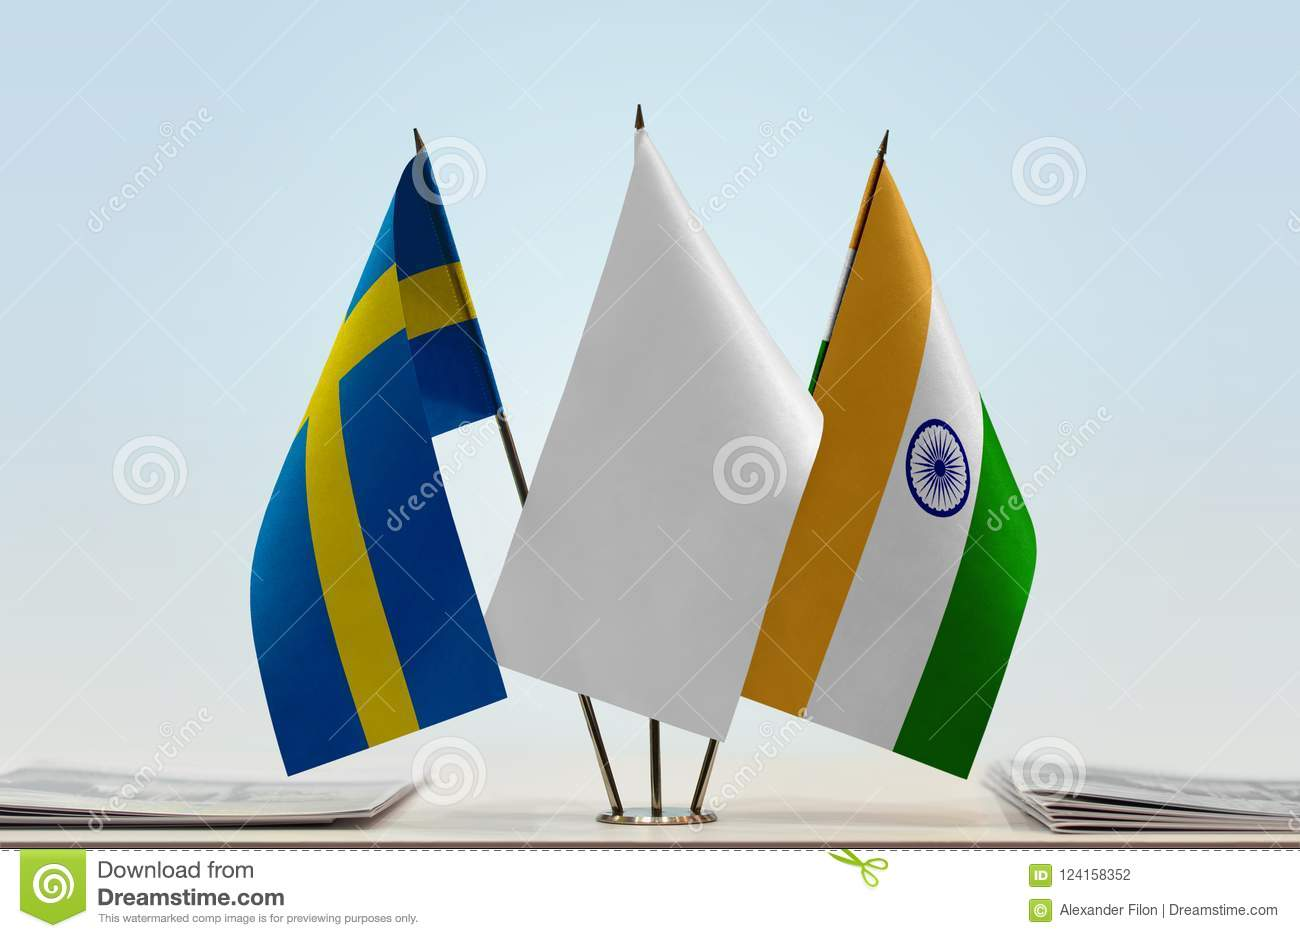 Flags of Sweden and India